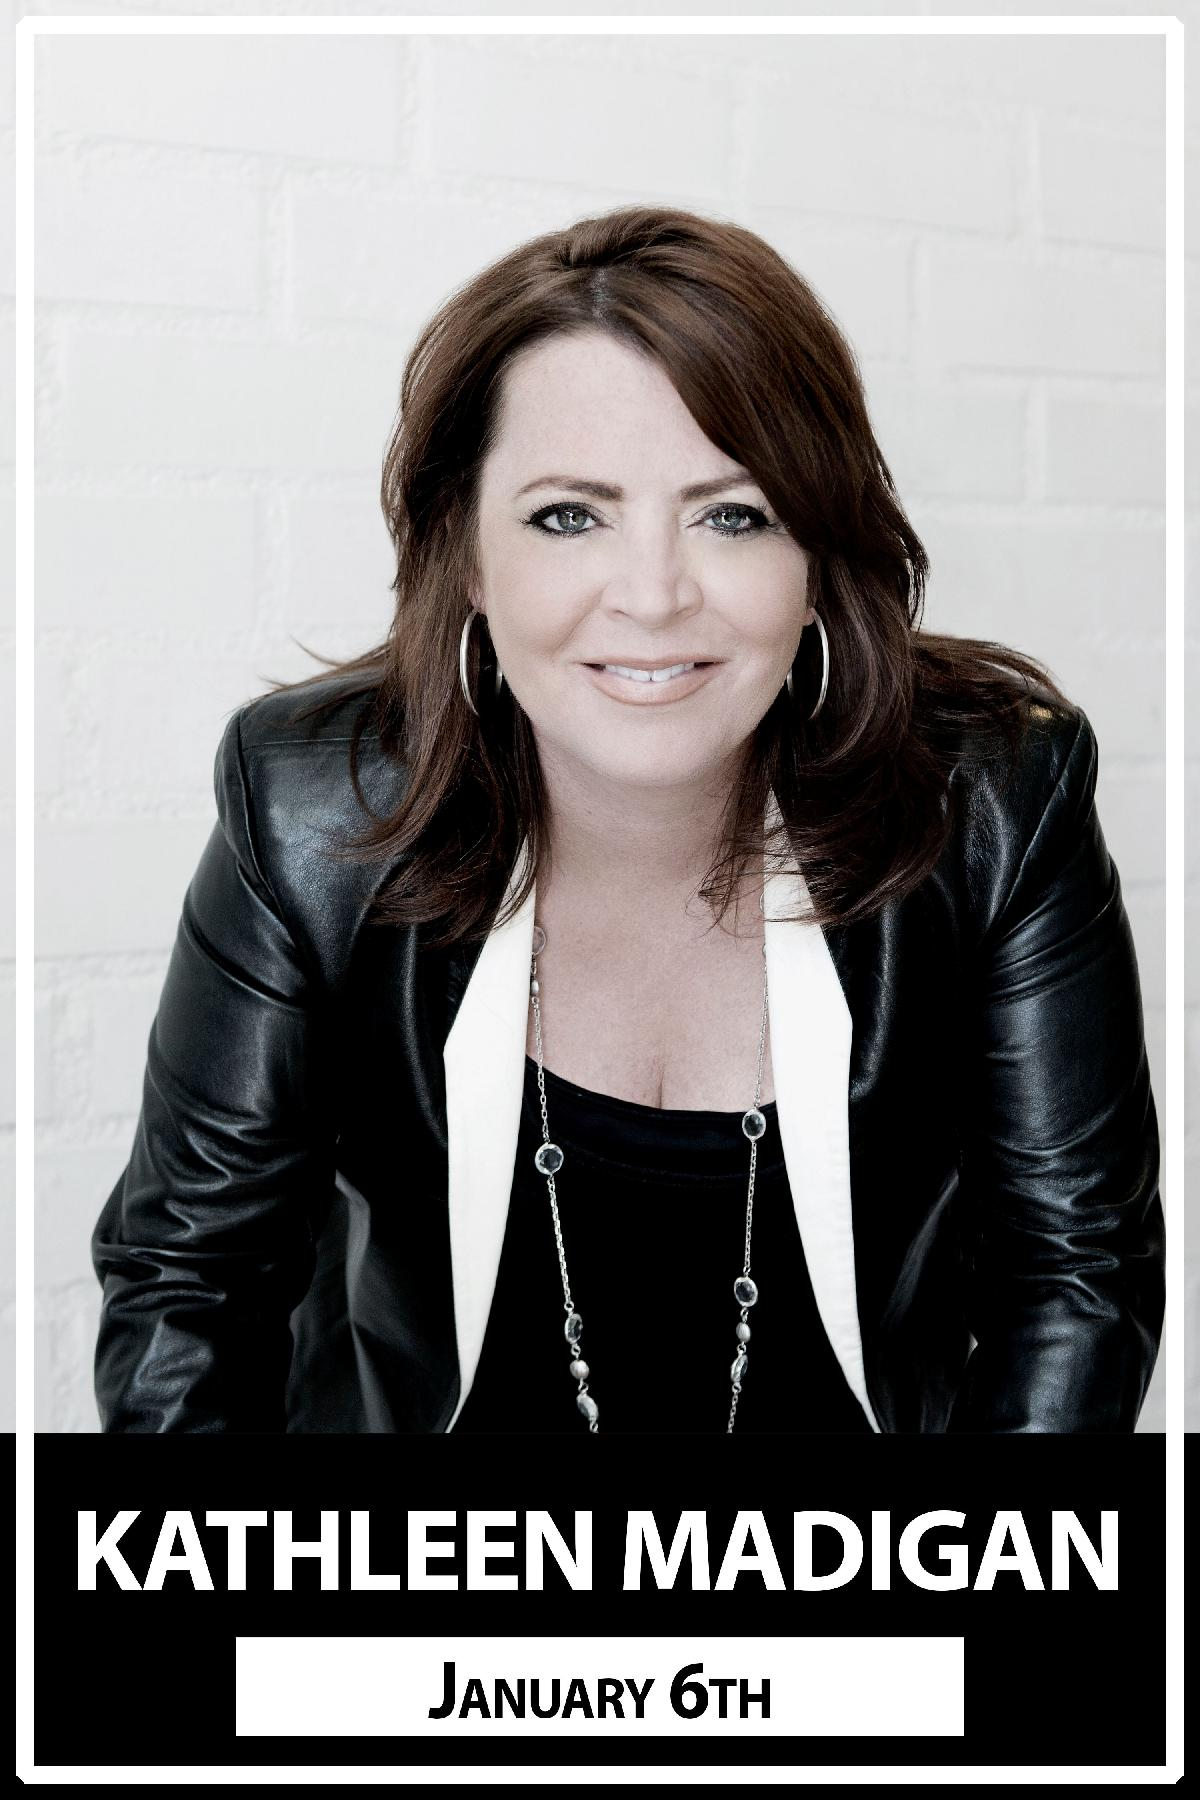 Kathleen Madigan seen on LCS, Leno, Letterman, Conan, Ferguson and so much more live at Zanies Comedy Club January 6, 2016